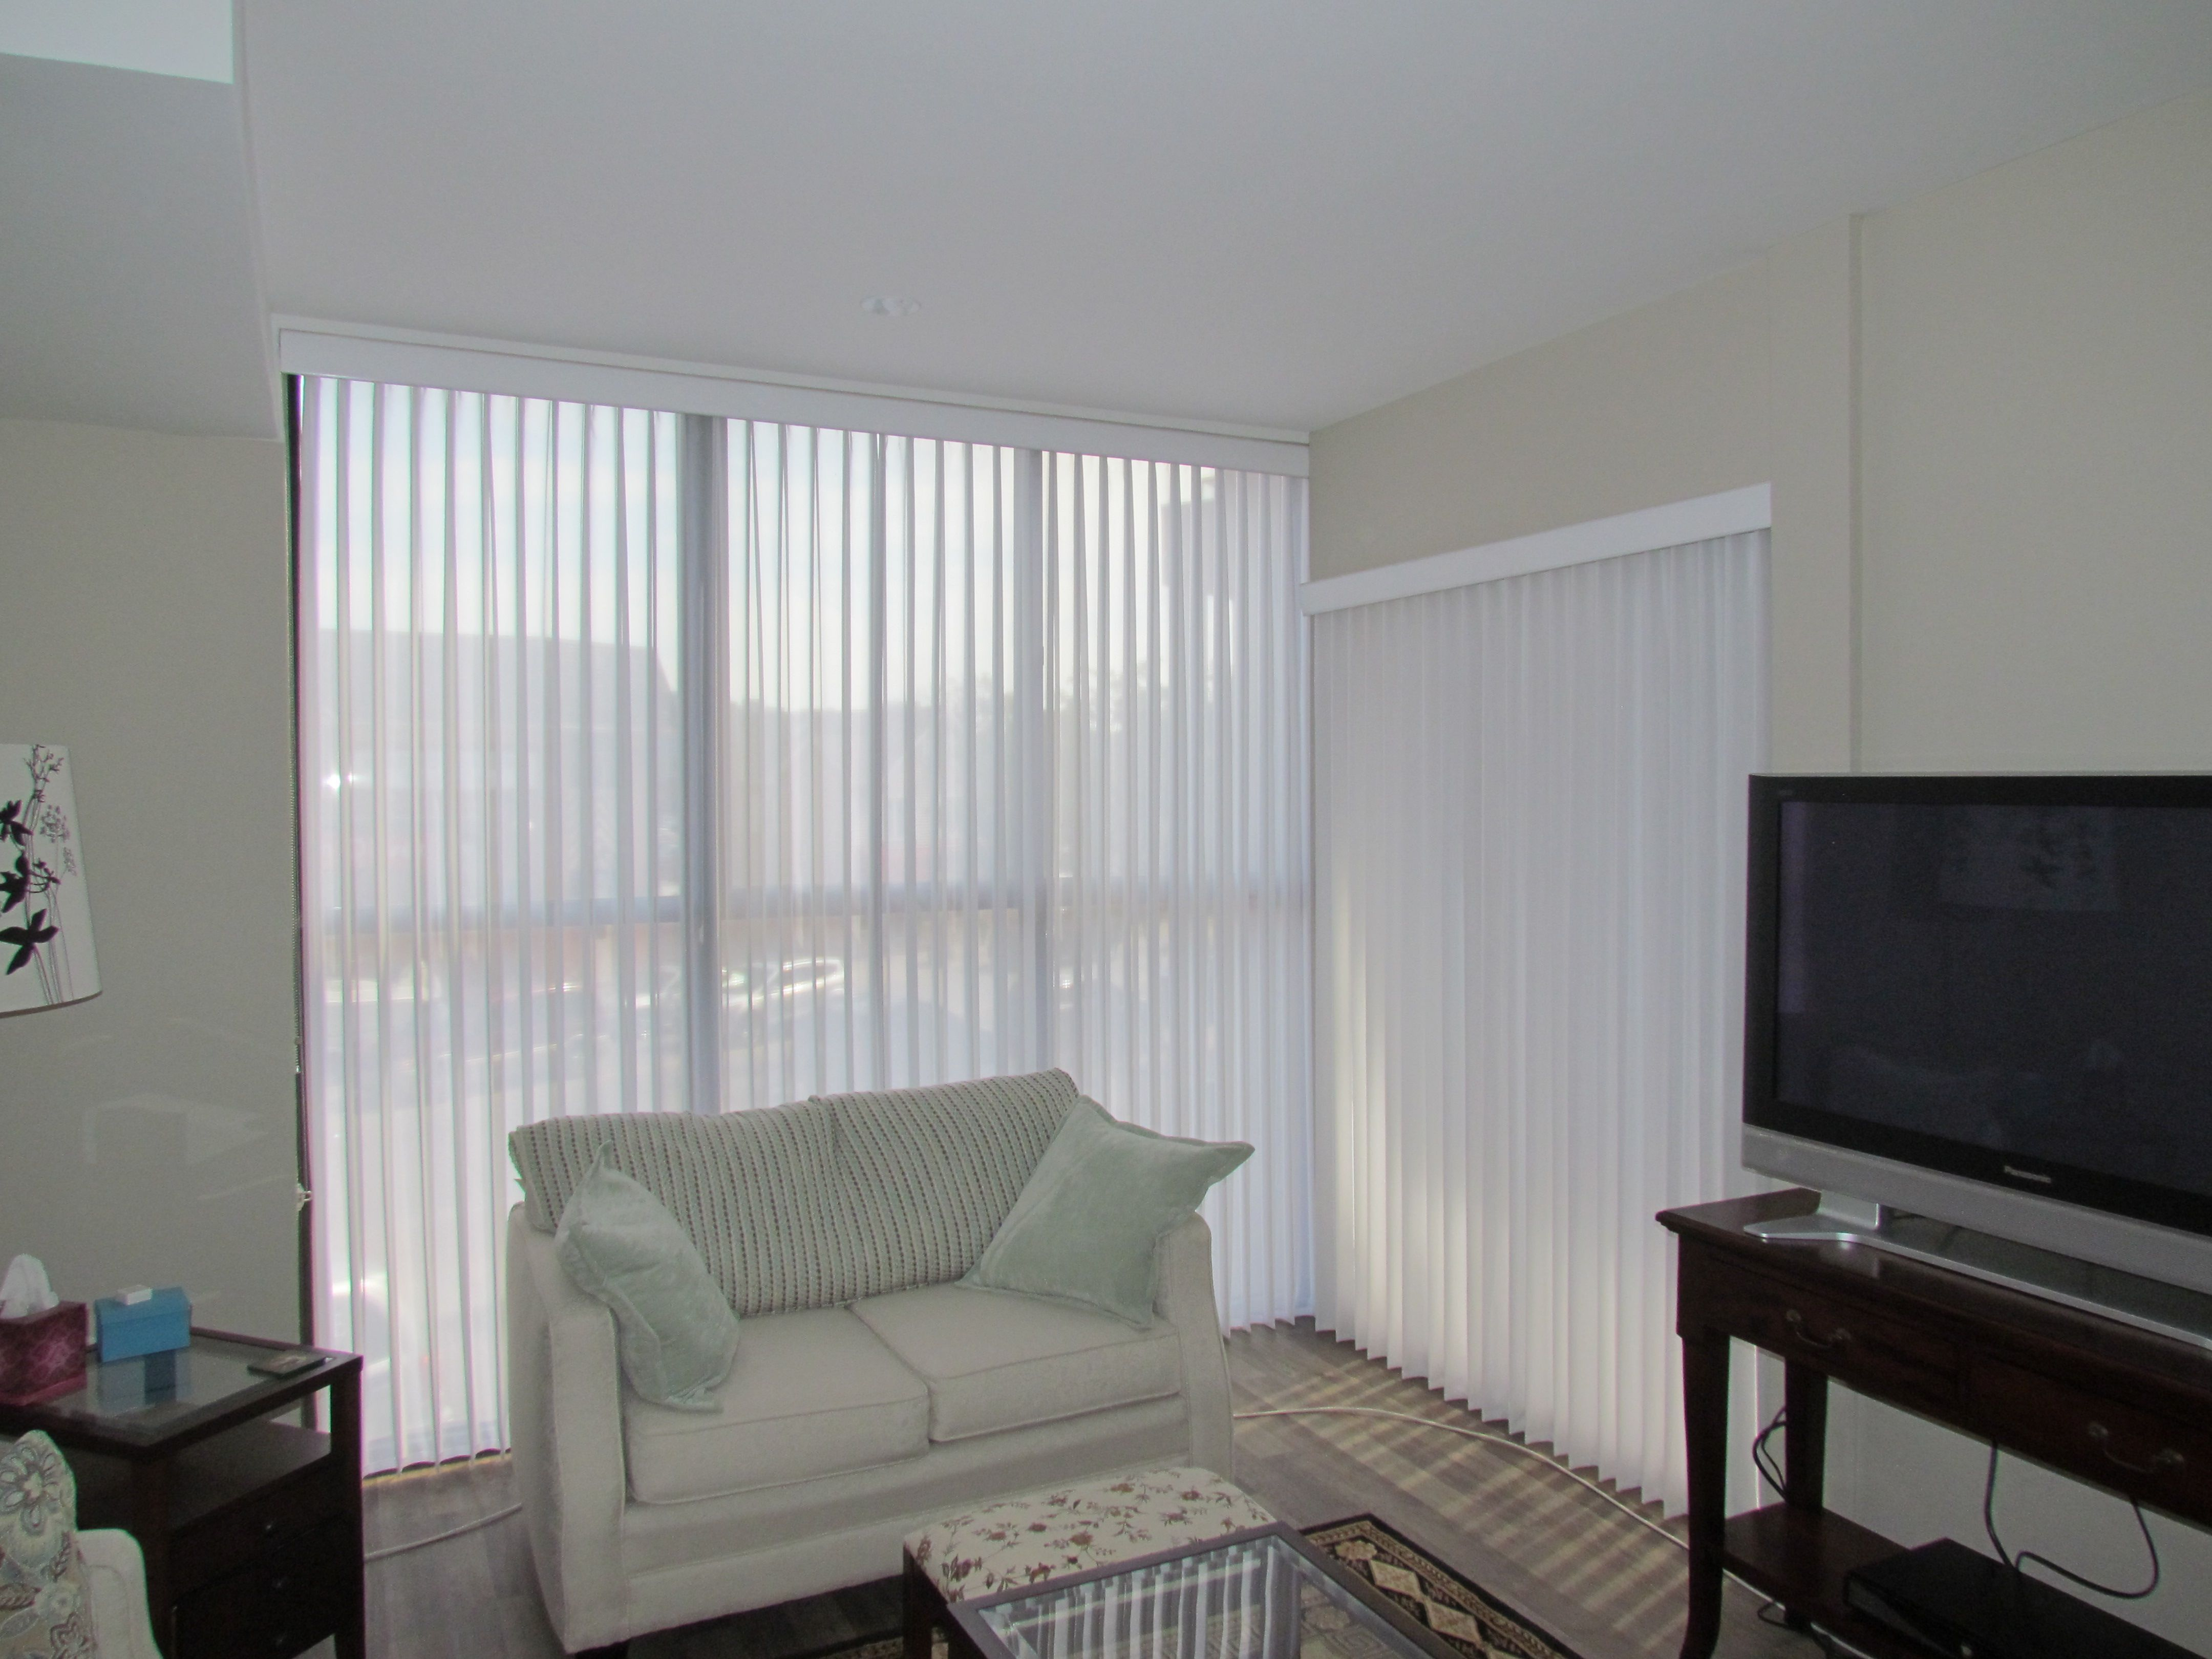 Vertical blinds with attached sheer easy to clean remove wash